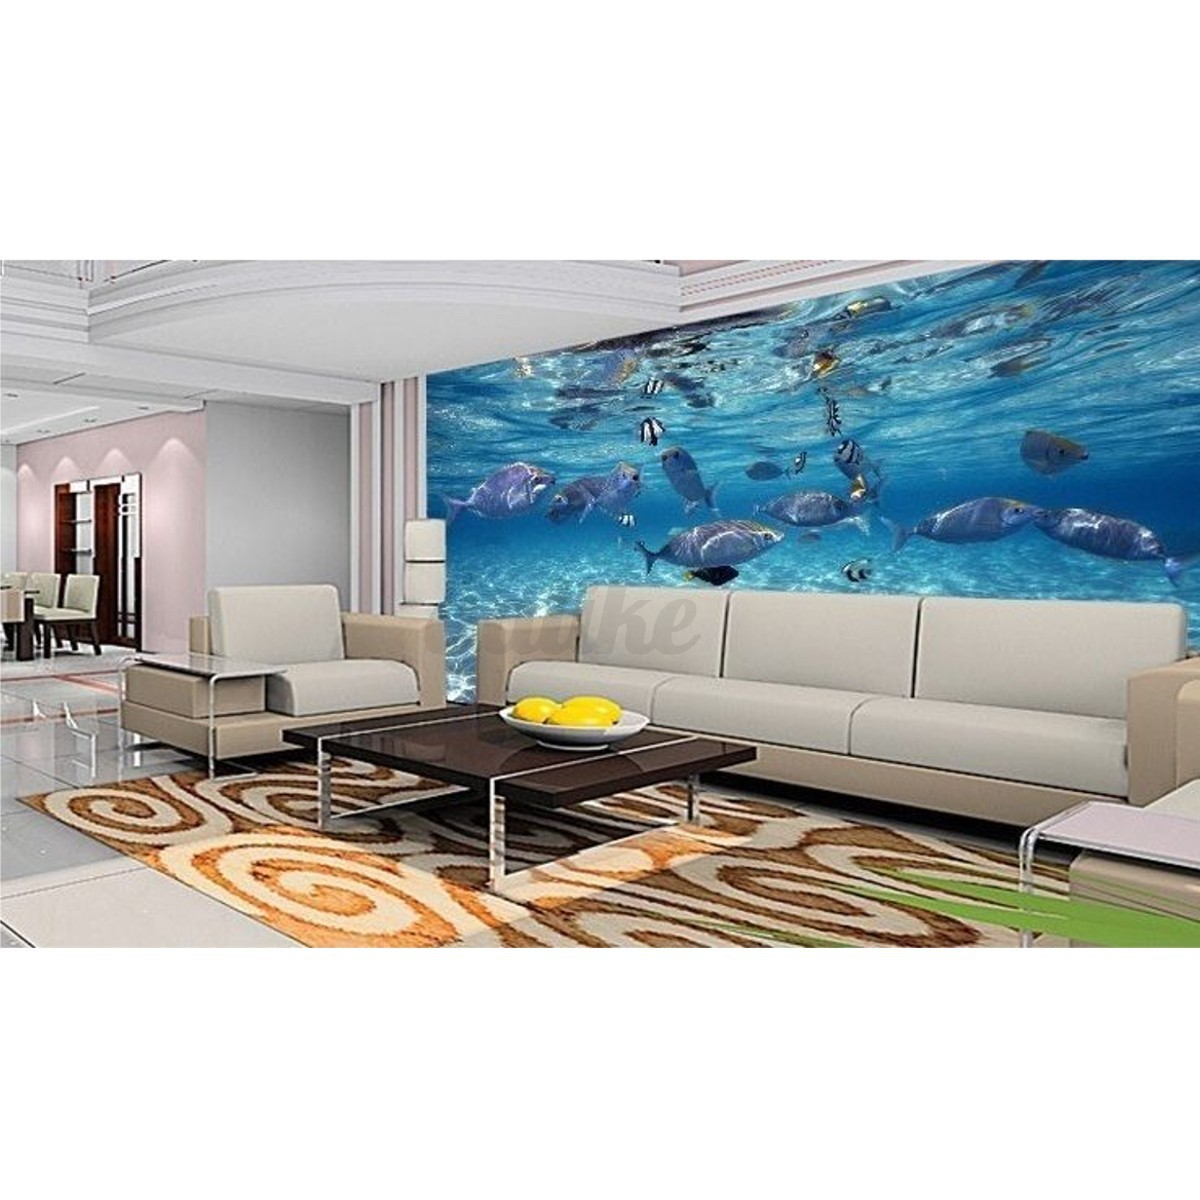 3d Wallpaper Bedroom Mural Roll Modern Luxury Sea World